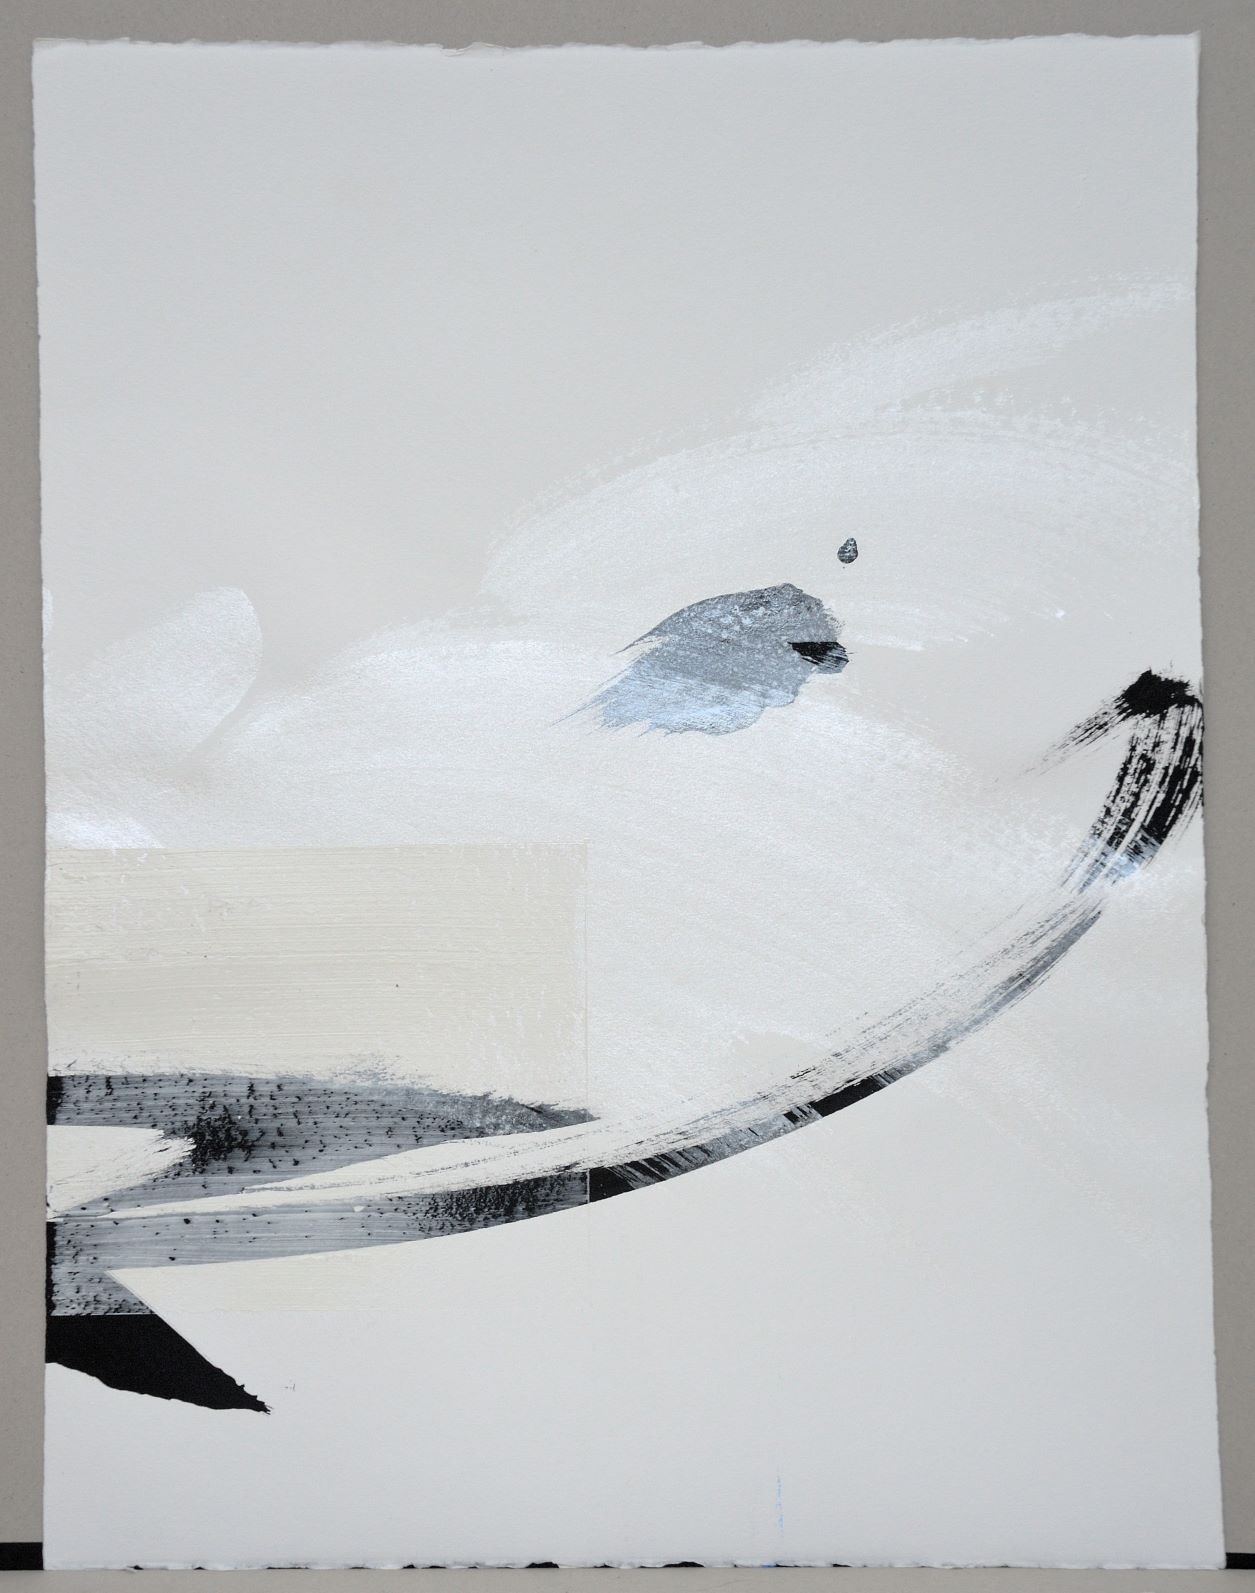 Permanescence N553-D - Hachiro Kanno - Contemporary painting - detail 2